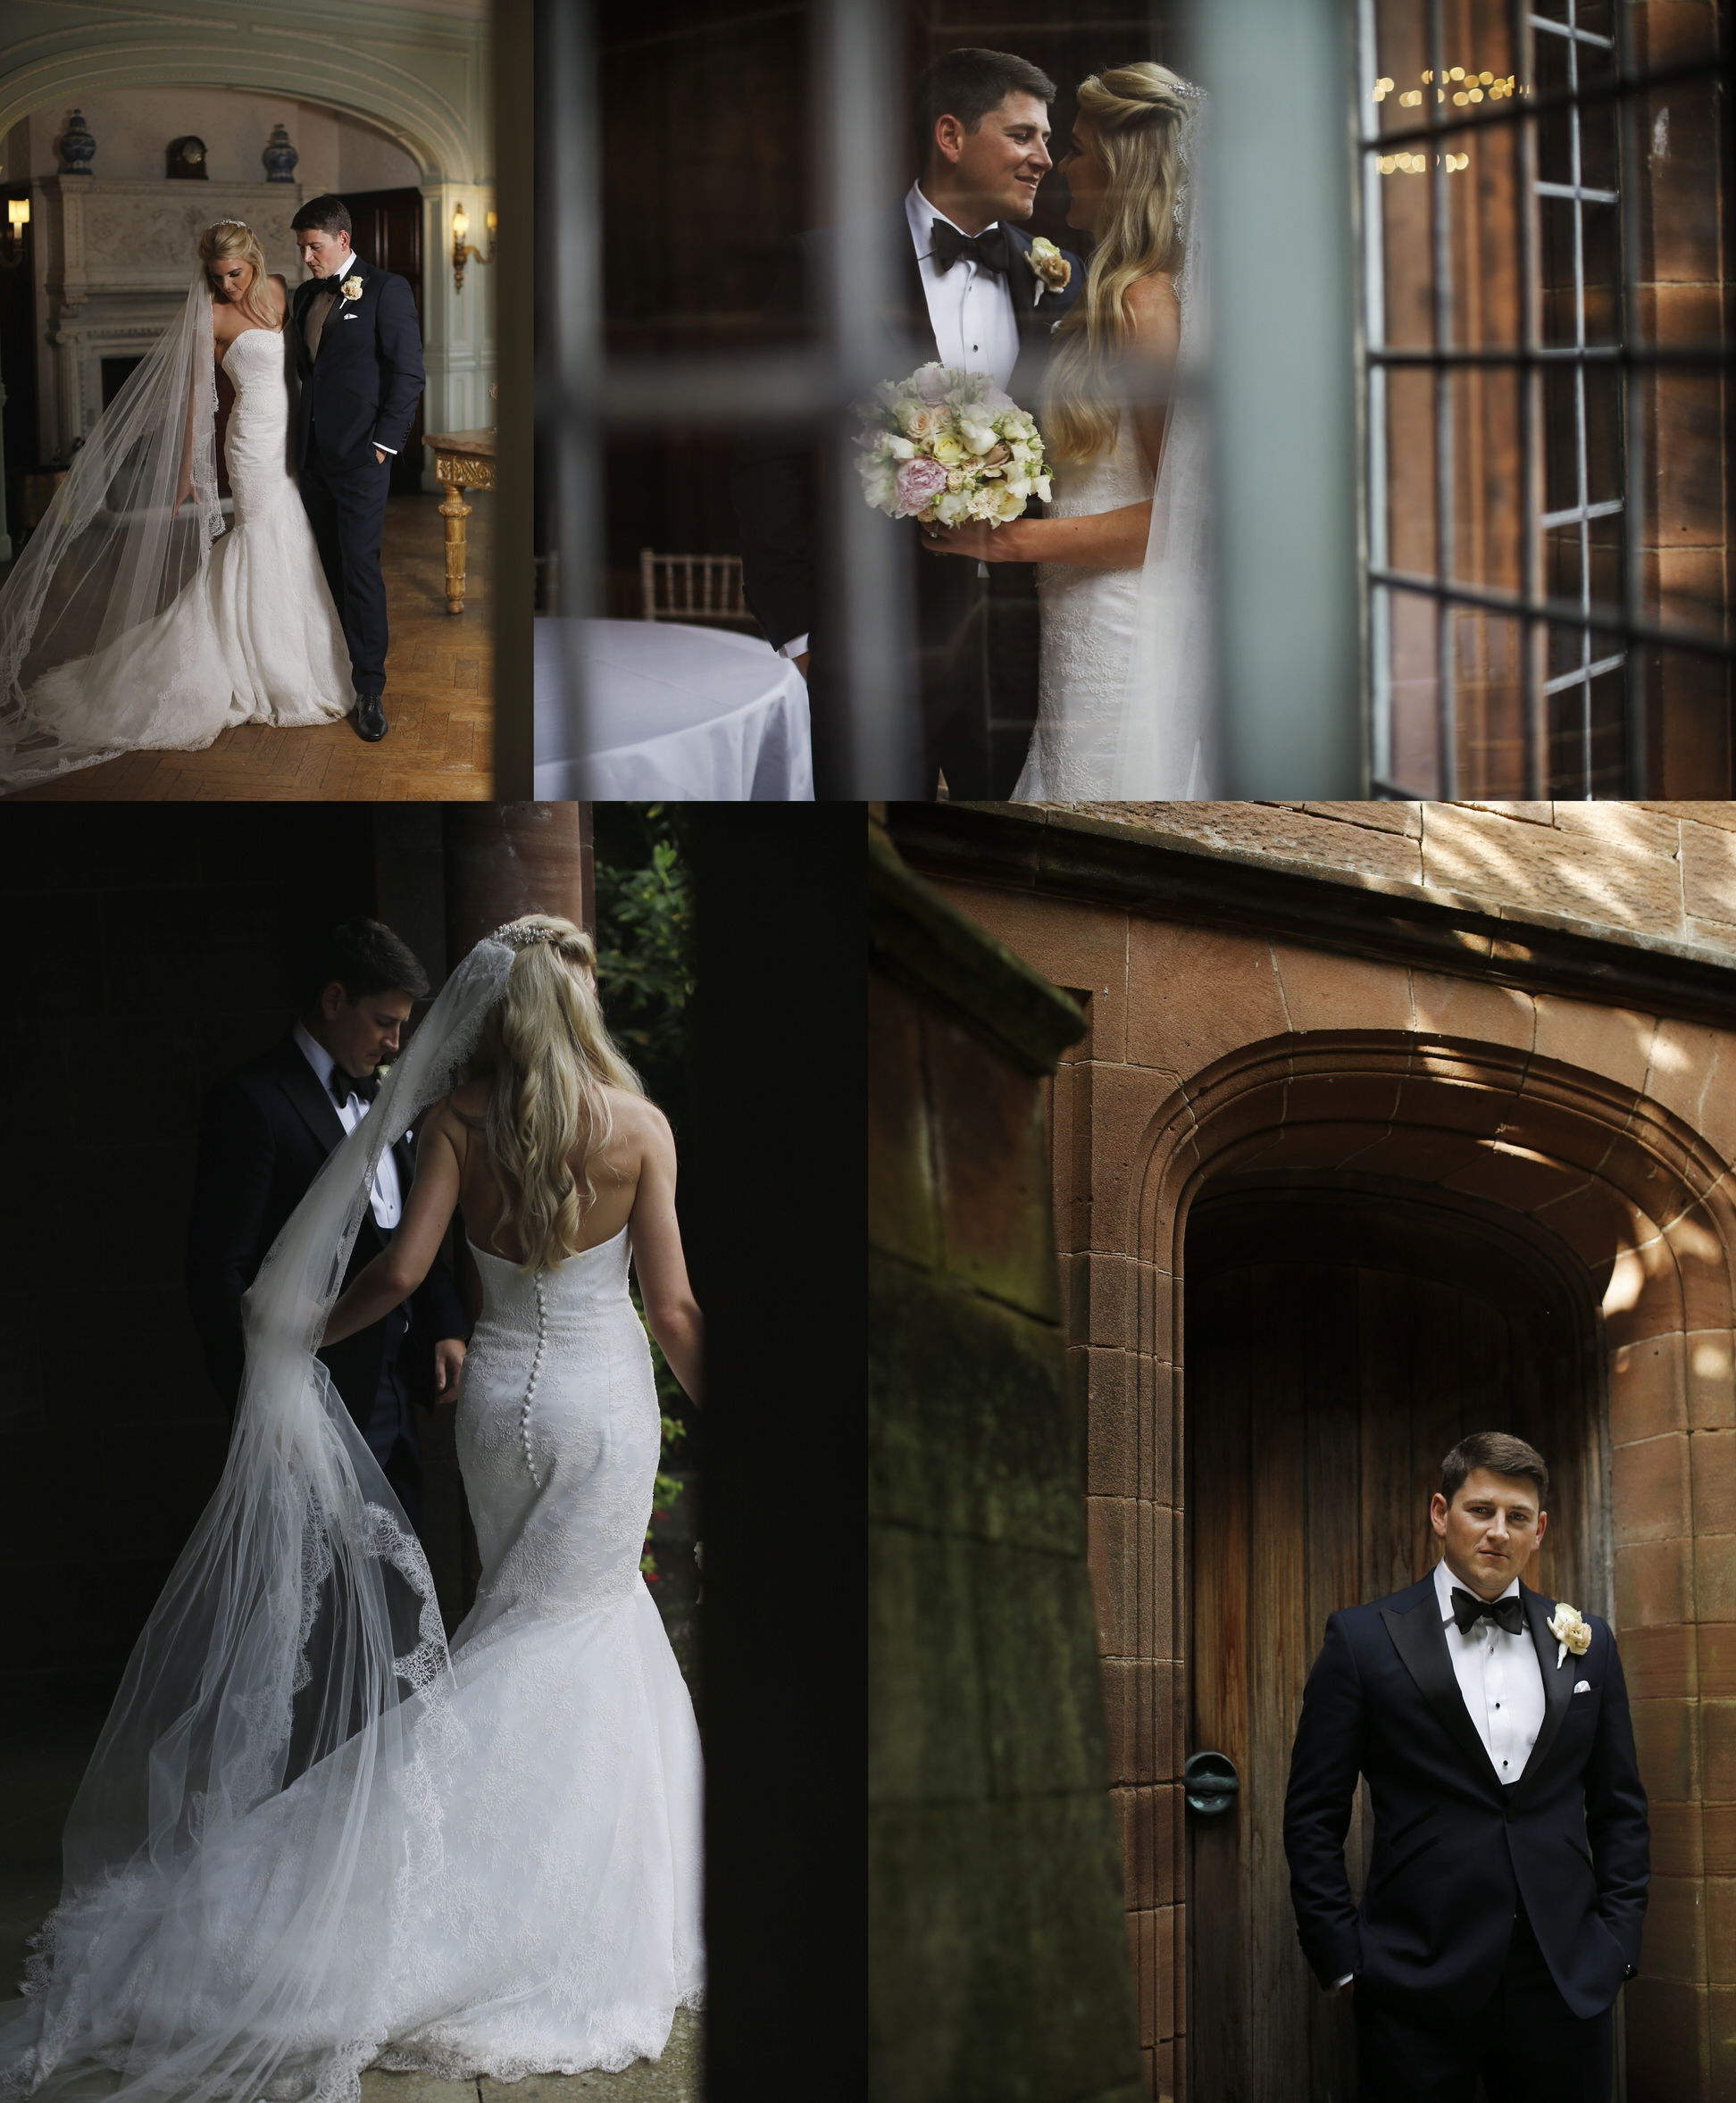 cheshire-wedding-photographer-thornton-manor-weddings_0025.jpg